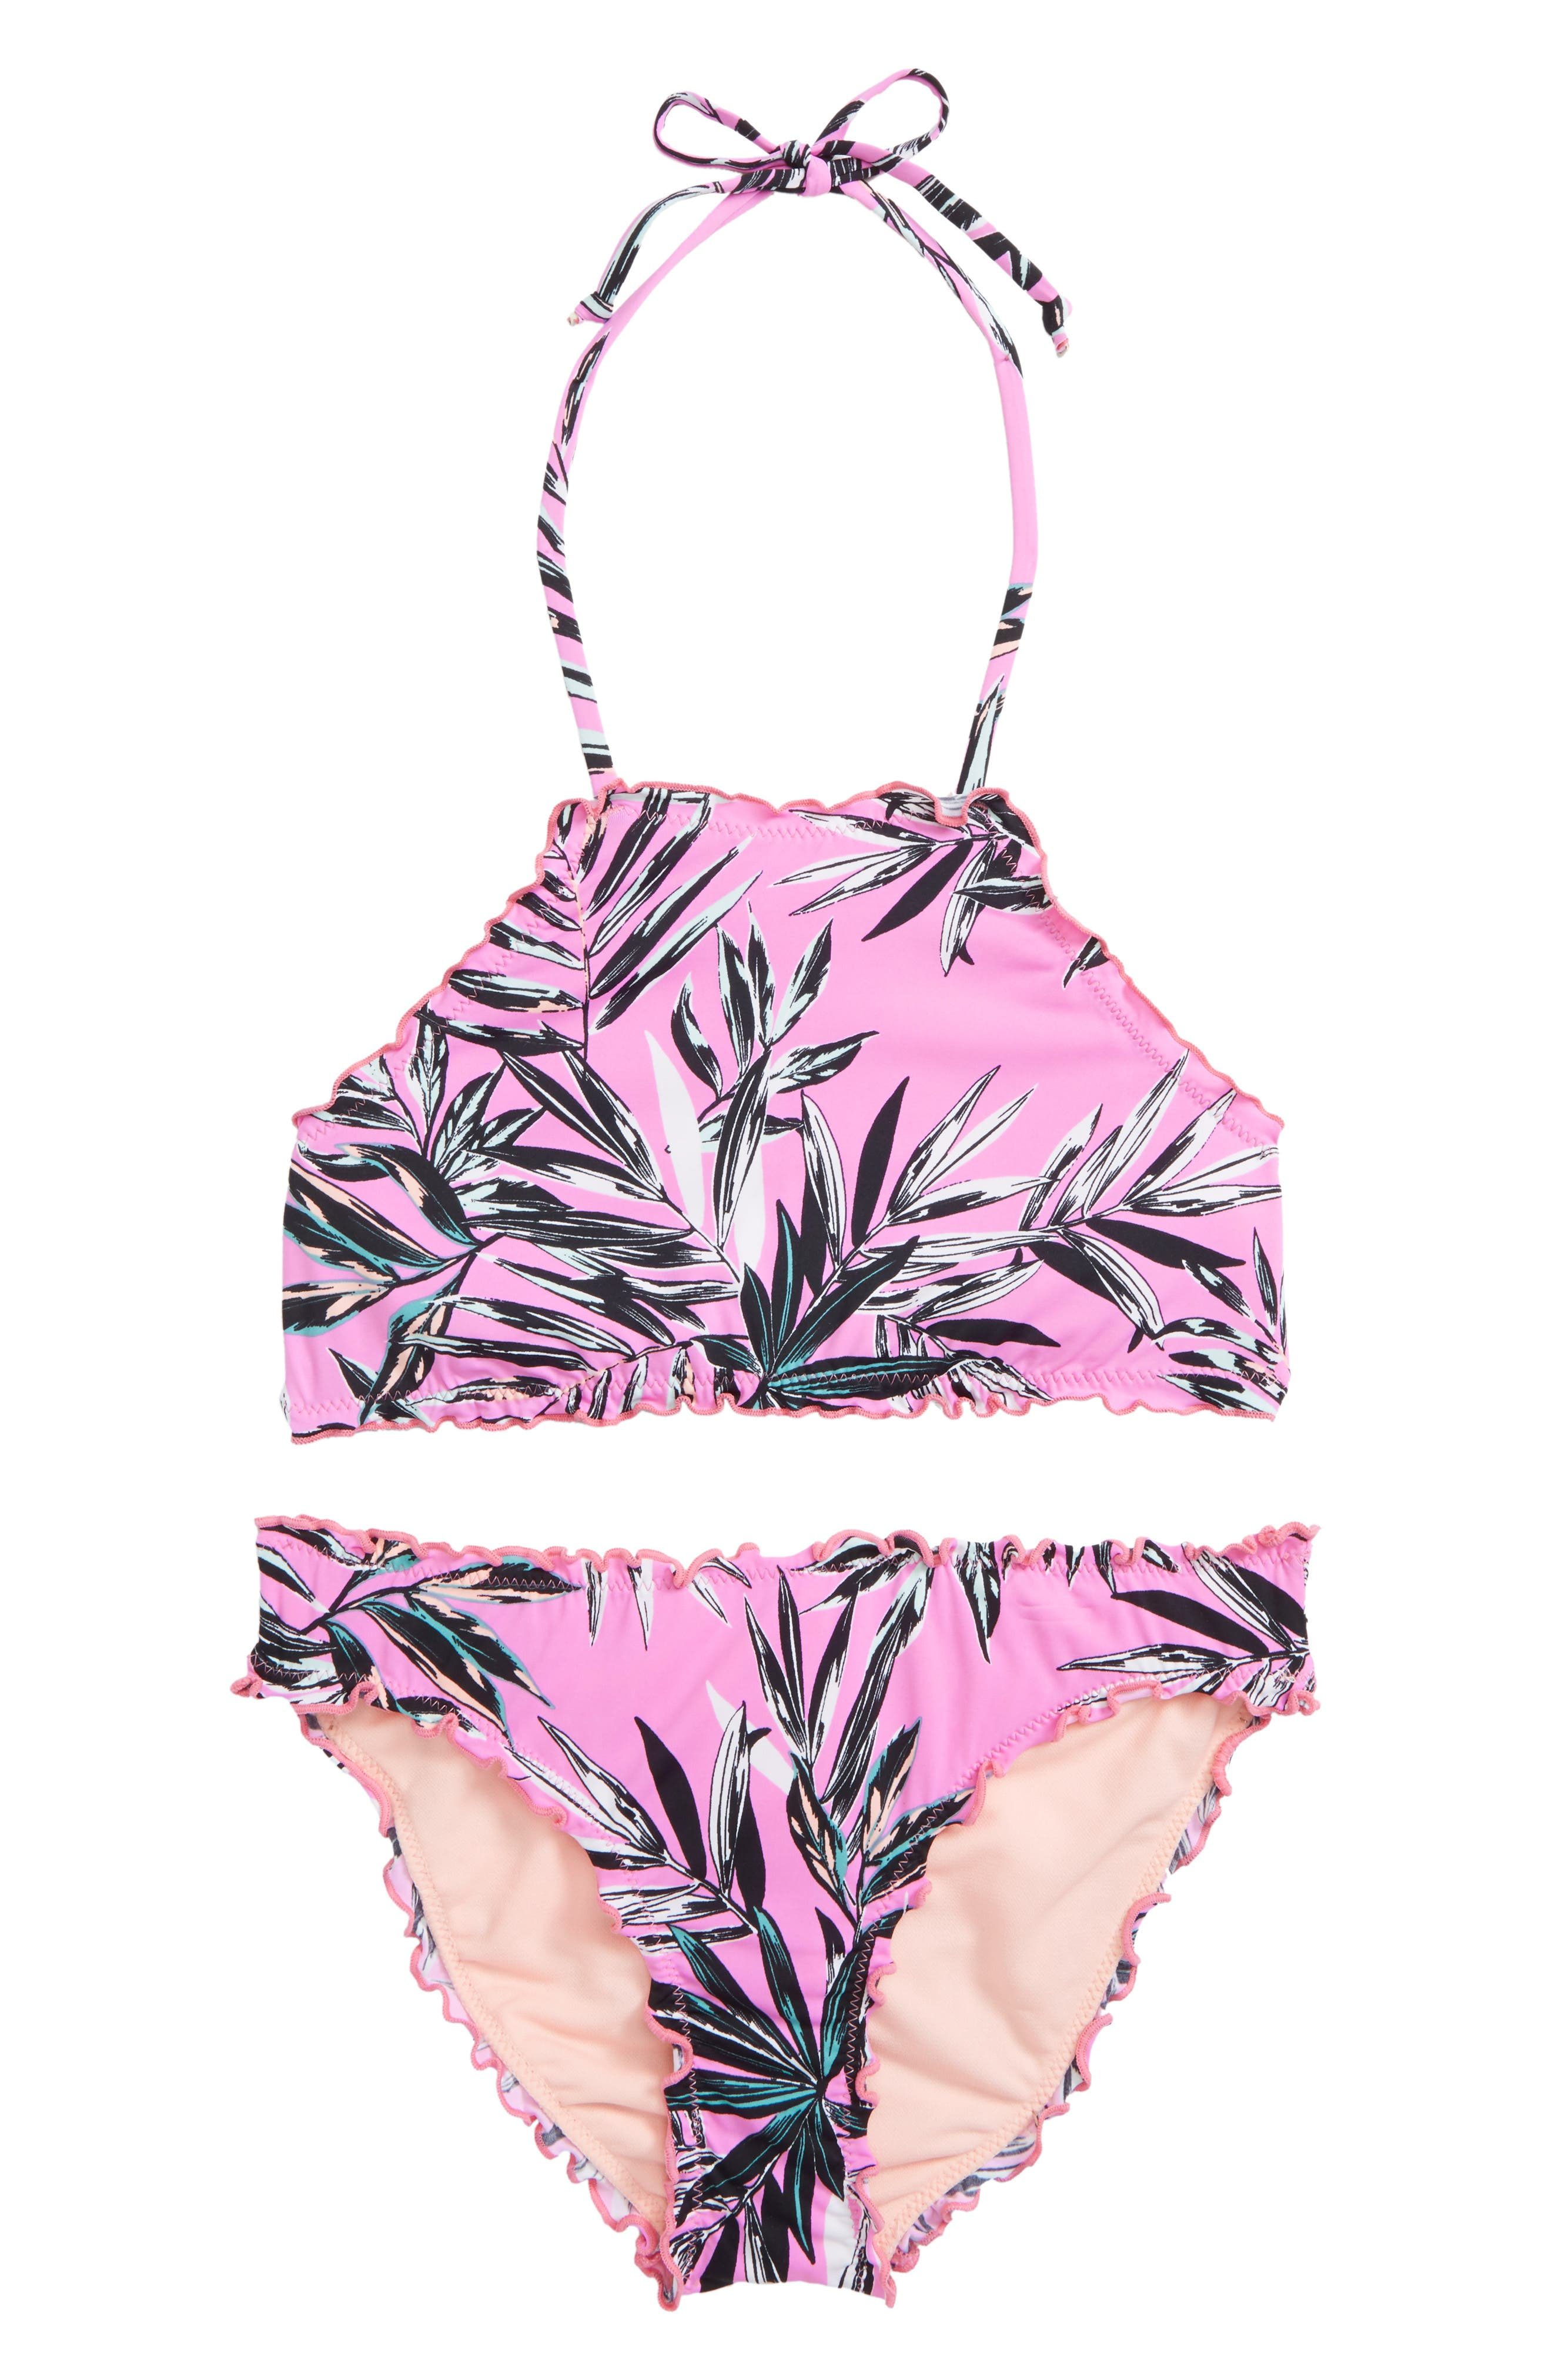 Shara Ruffle Two-Piece Swimsuit,                             Main thumbnail 1, color,                             650